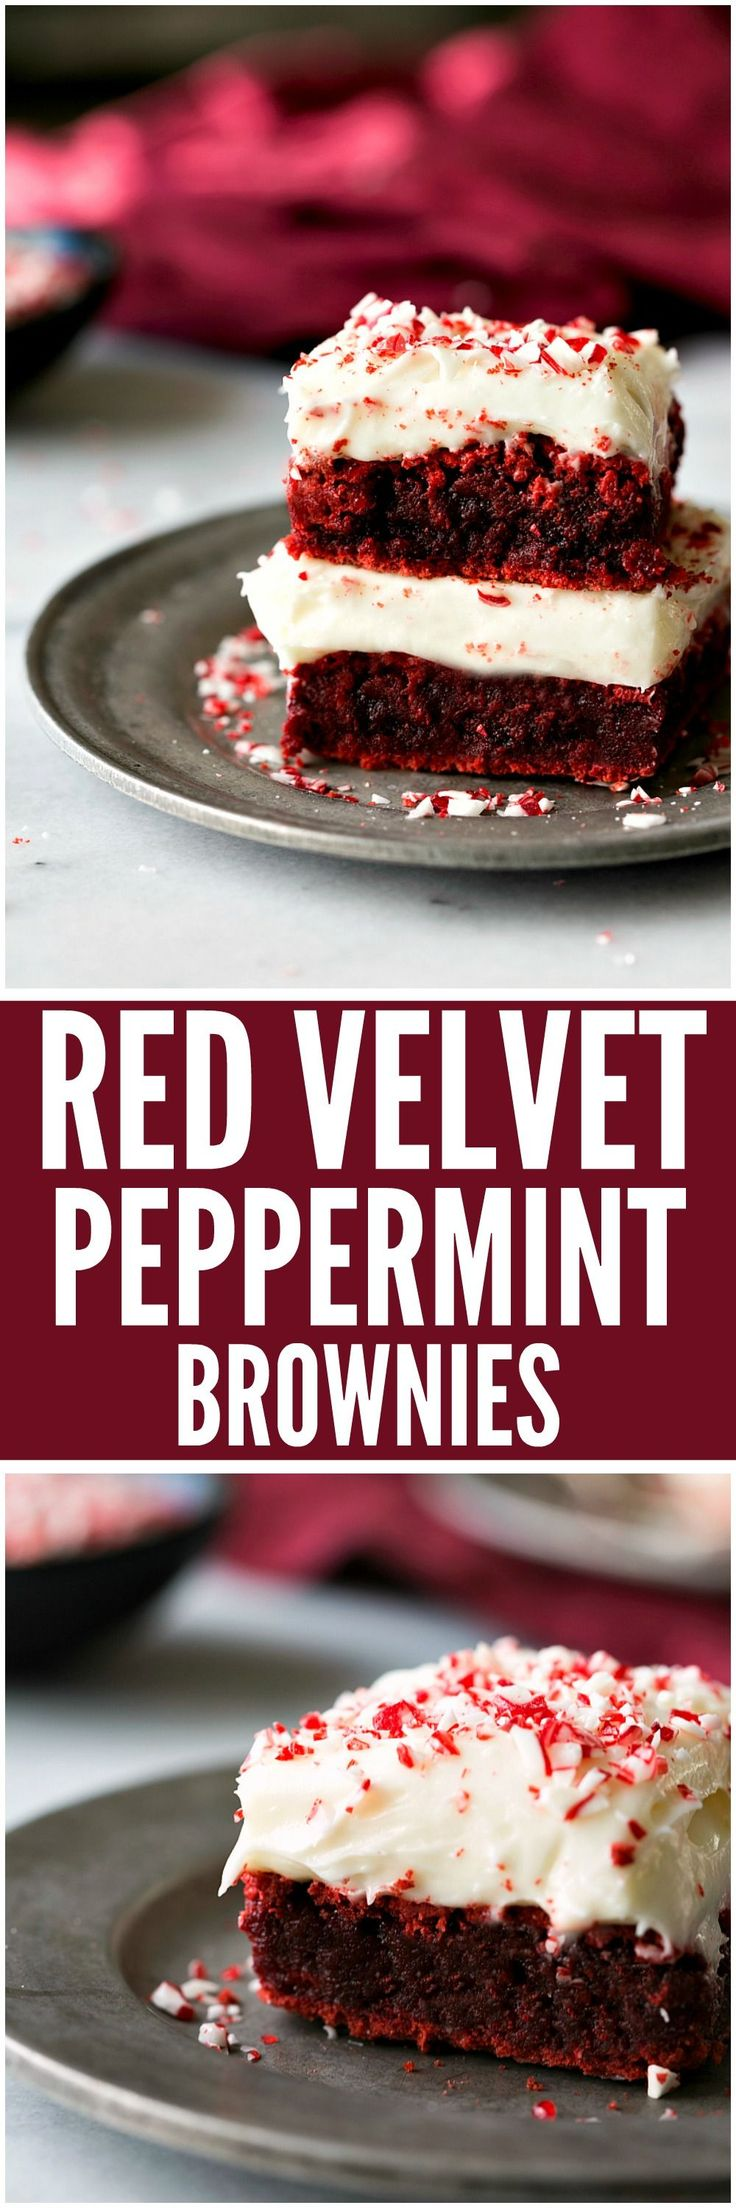 Red Velvet Peppermint Brownies with Peppermint Cream Cheese Frosting are the perfect holiday brownie! A rich and chewy vibrant red peppermint brownie piled high with peppermint cream cheese frosting.